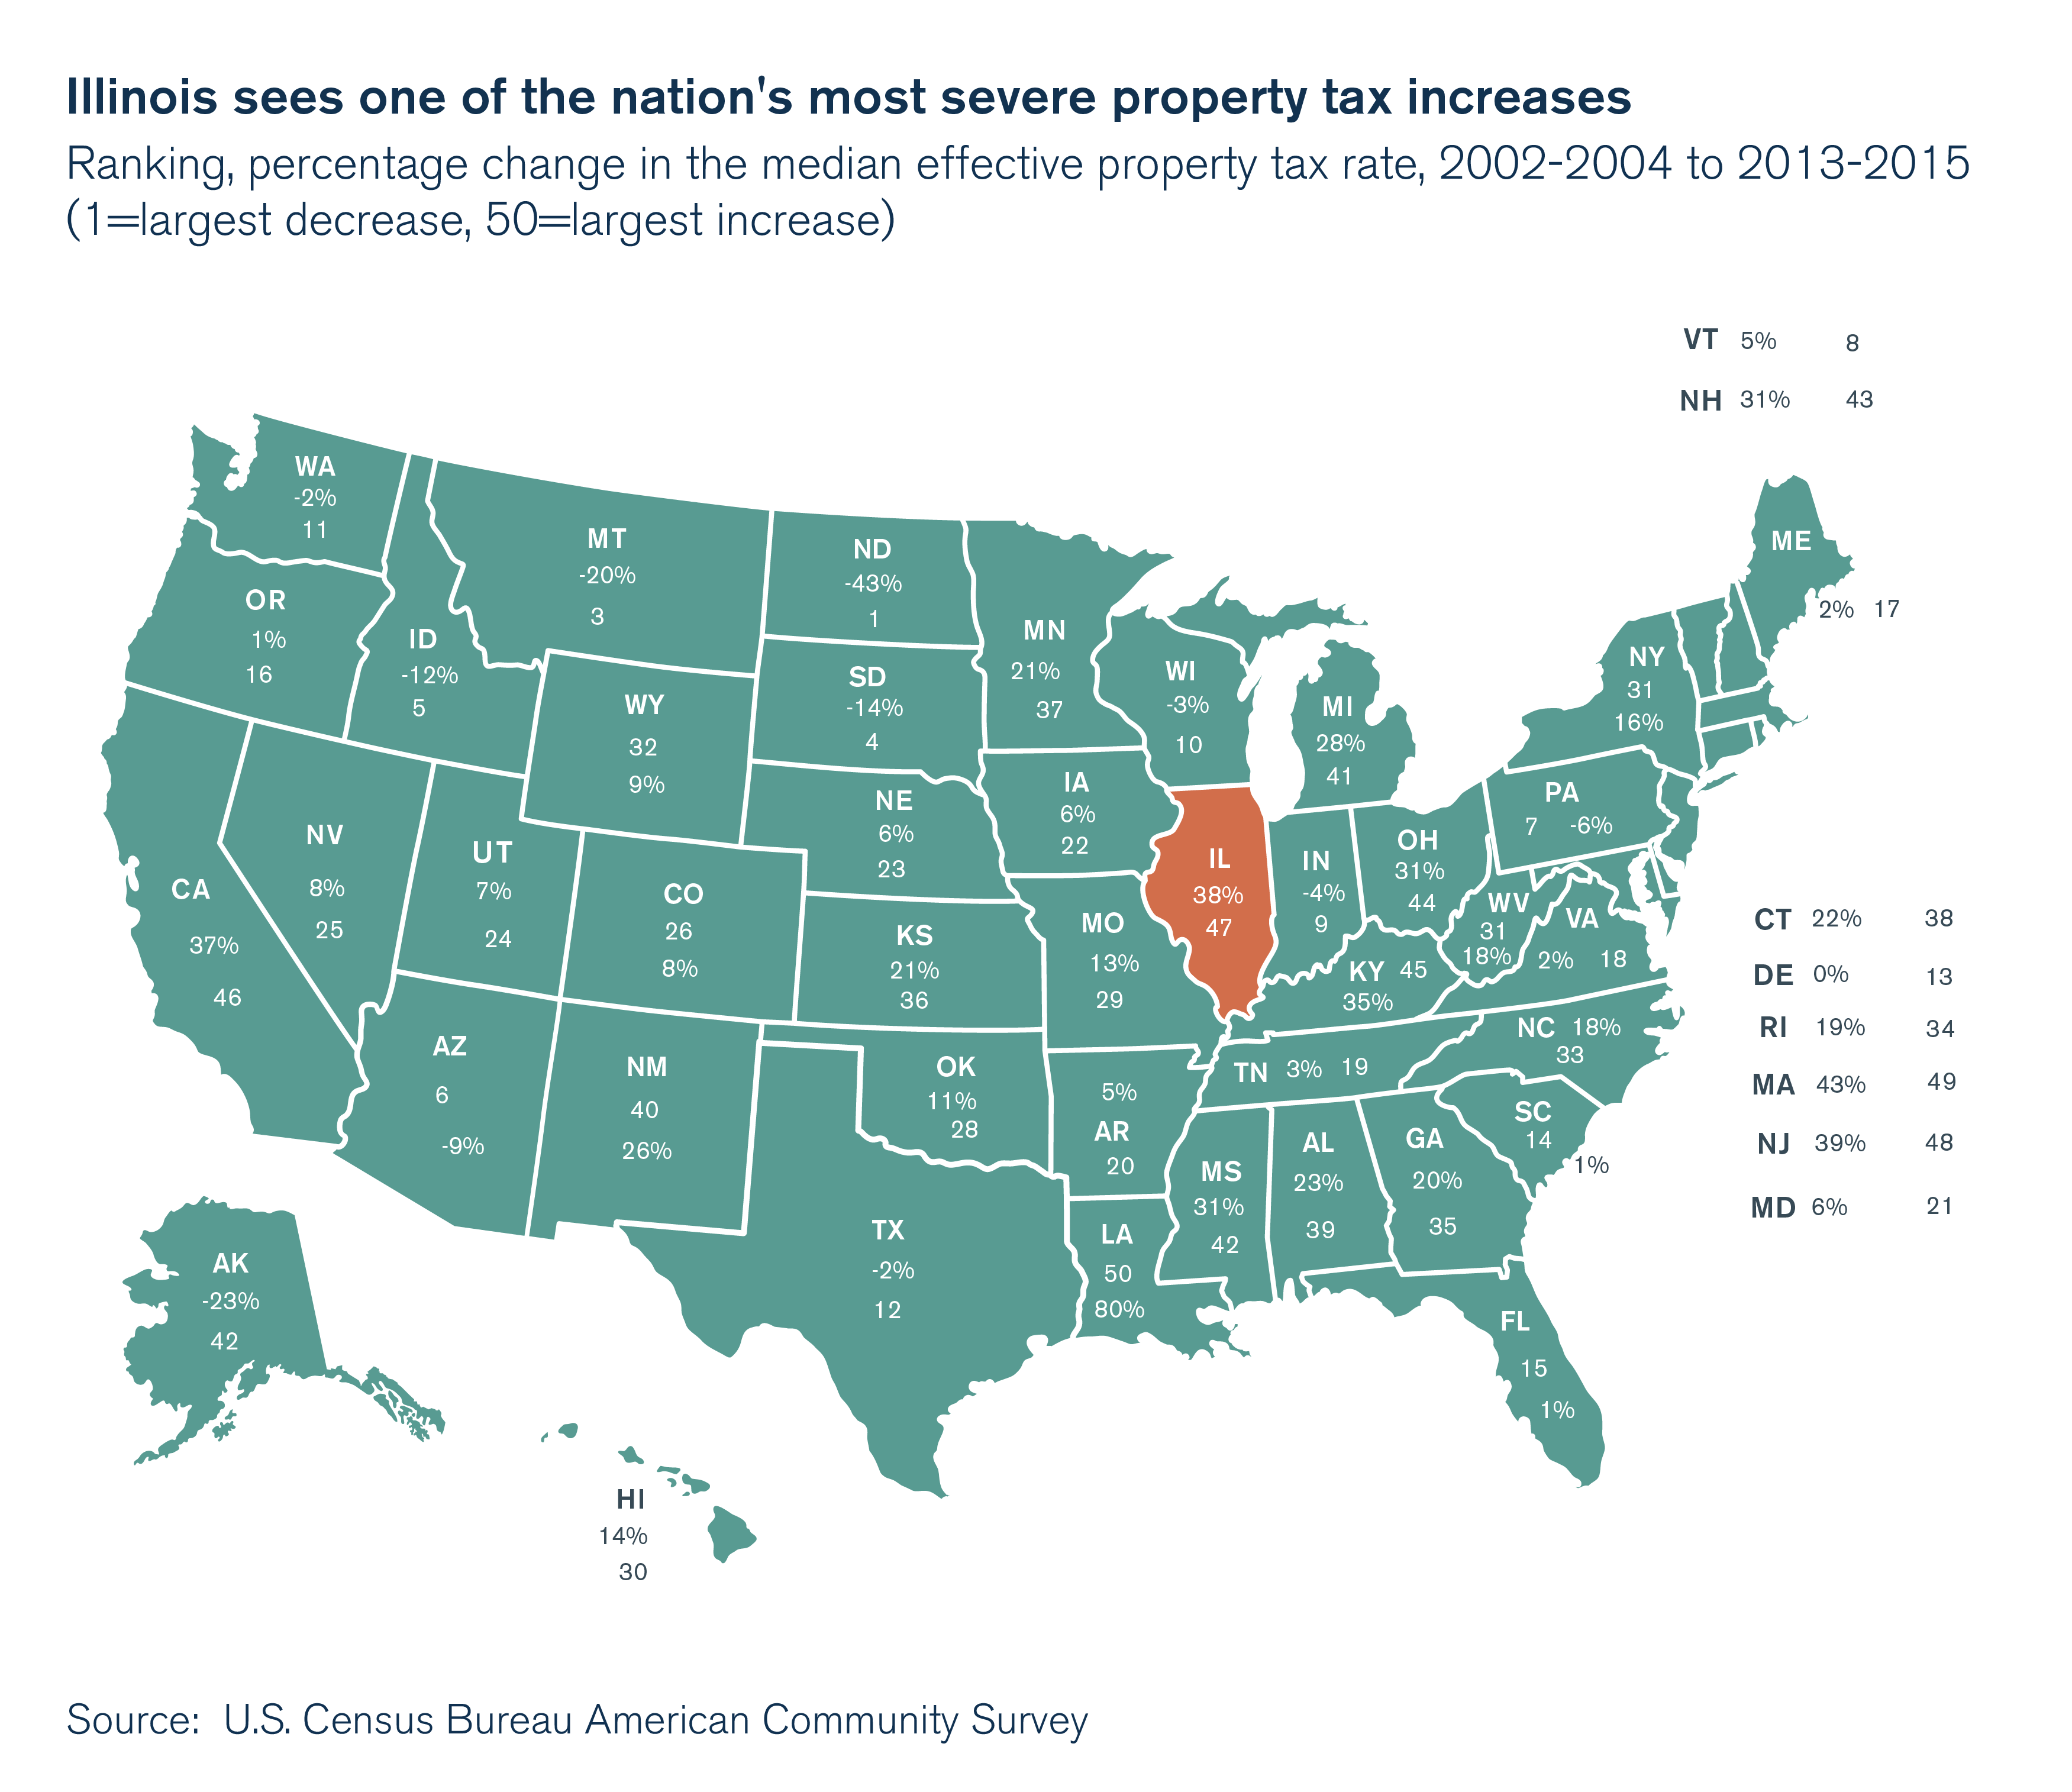 Illinois sees one of the nation's most severe property tax increases